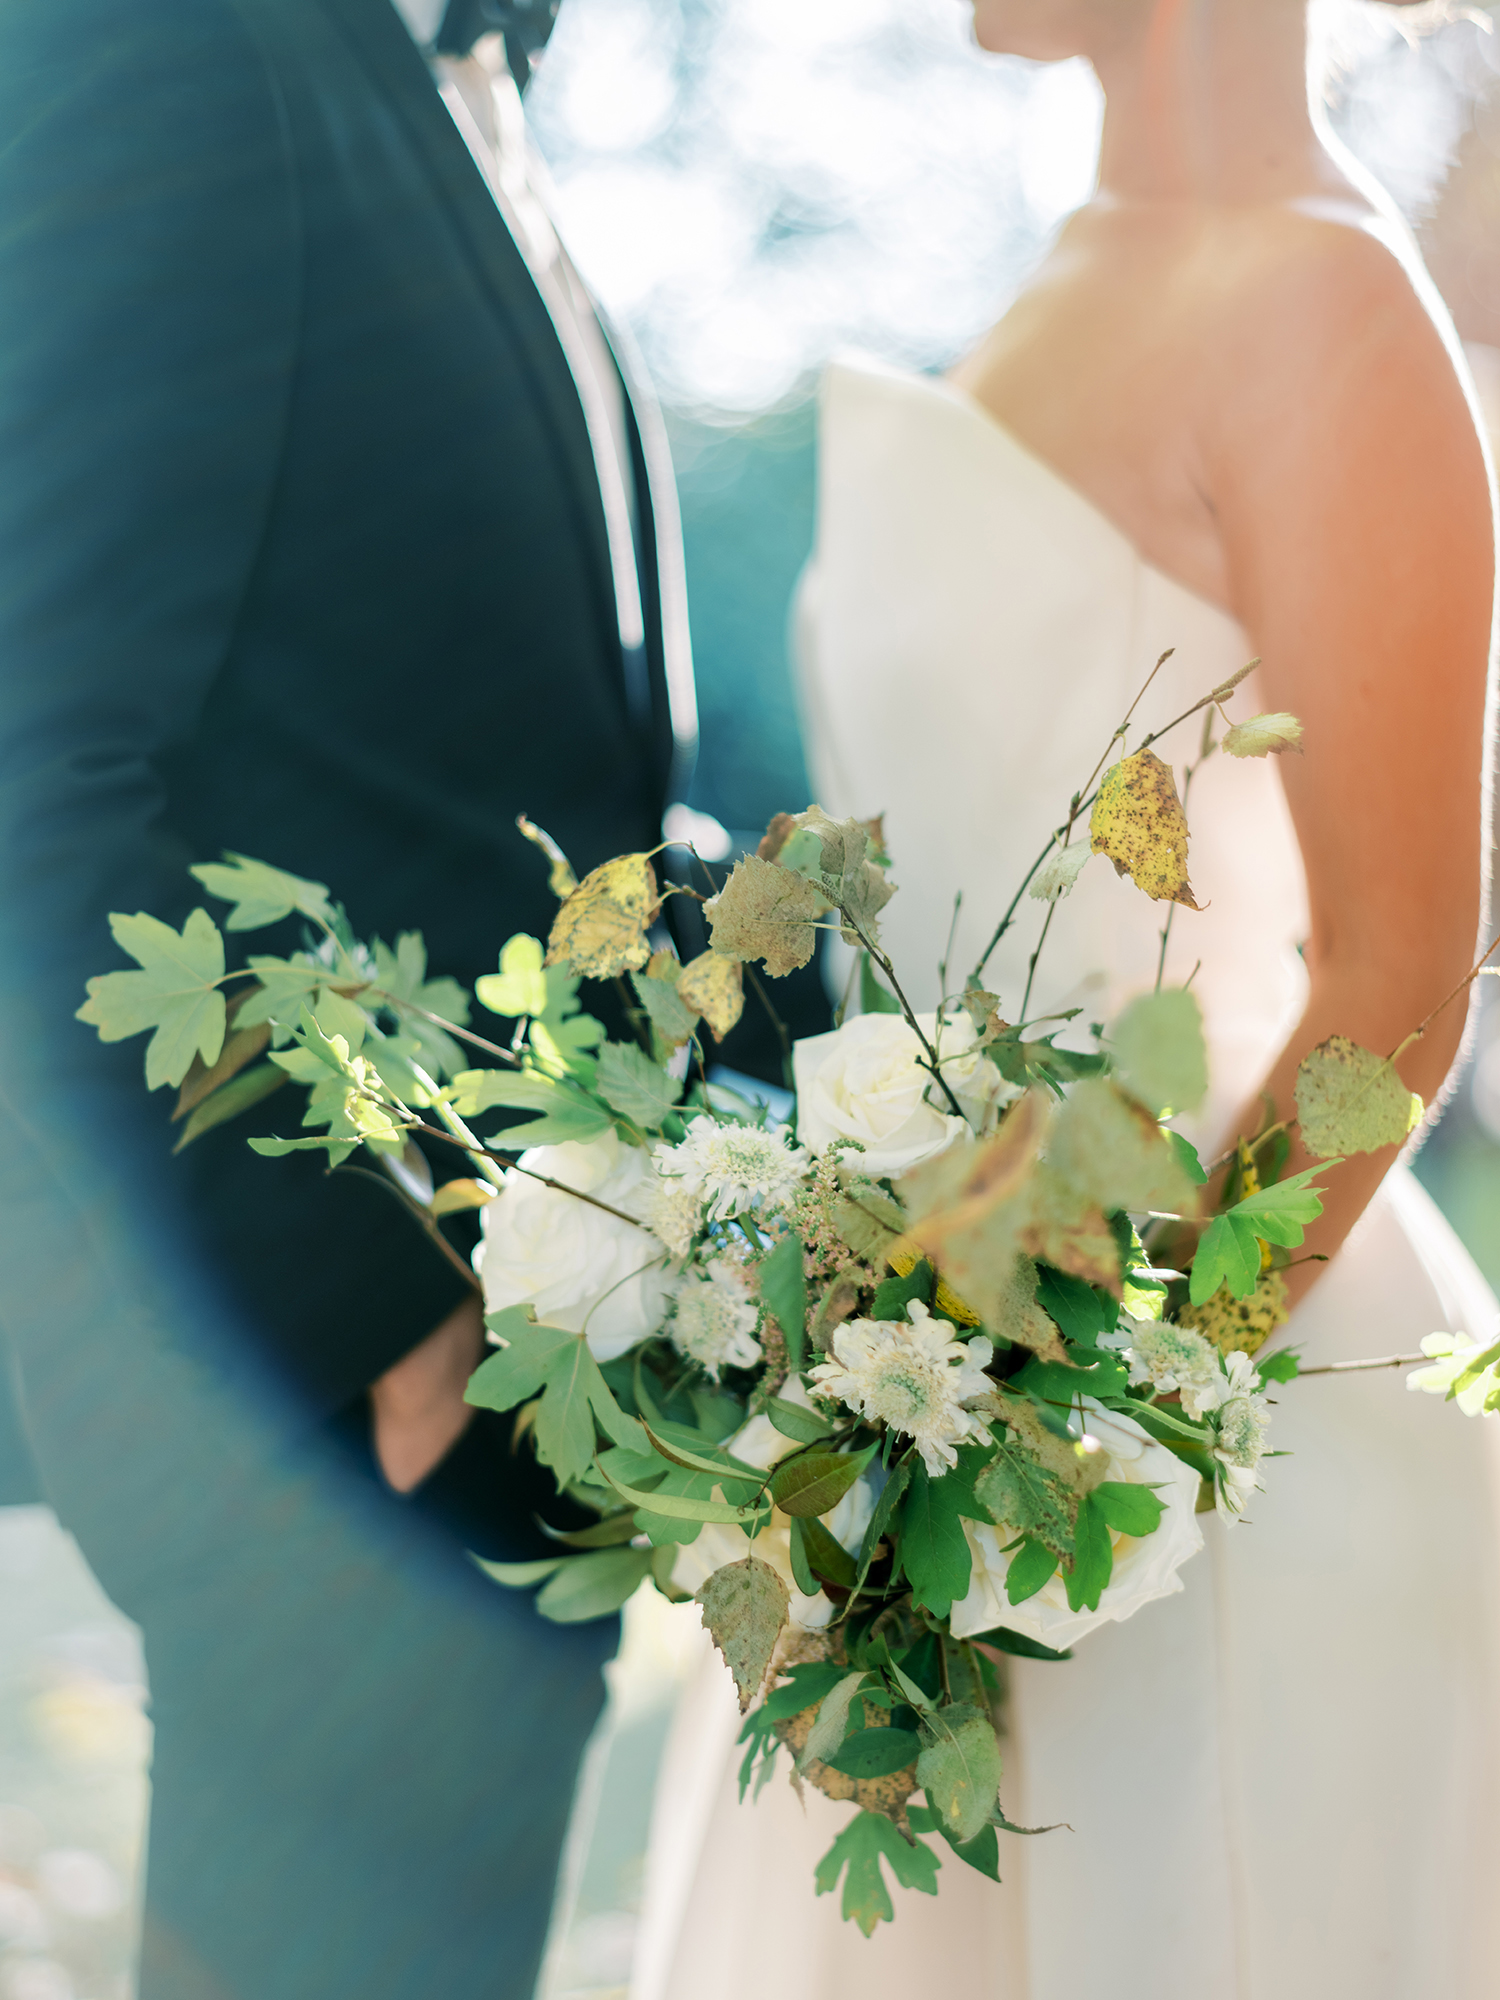 Bridal bouquet inspiration for Fall weddings with creative direction and styling by Brancoprata